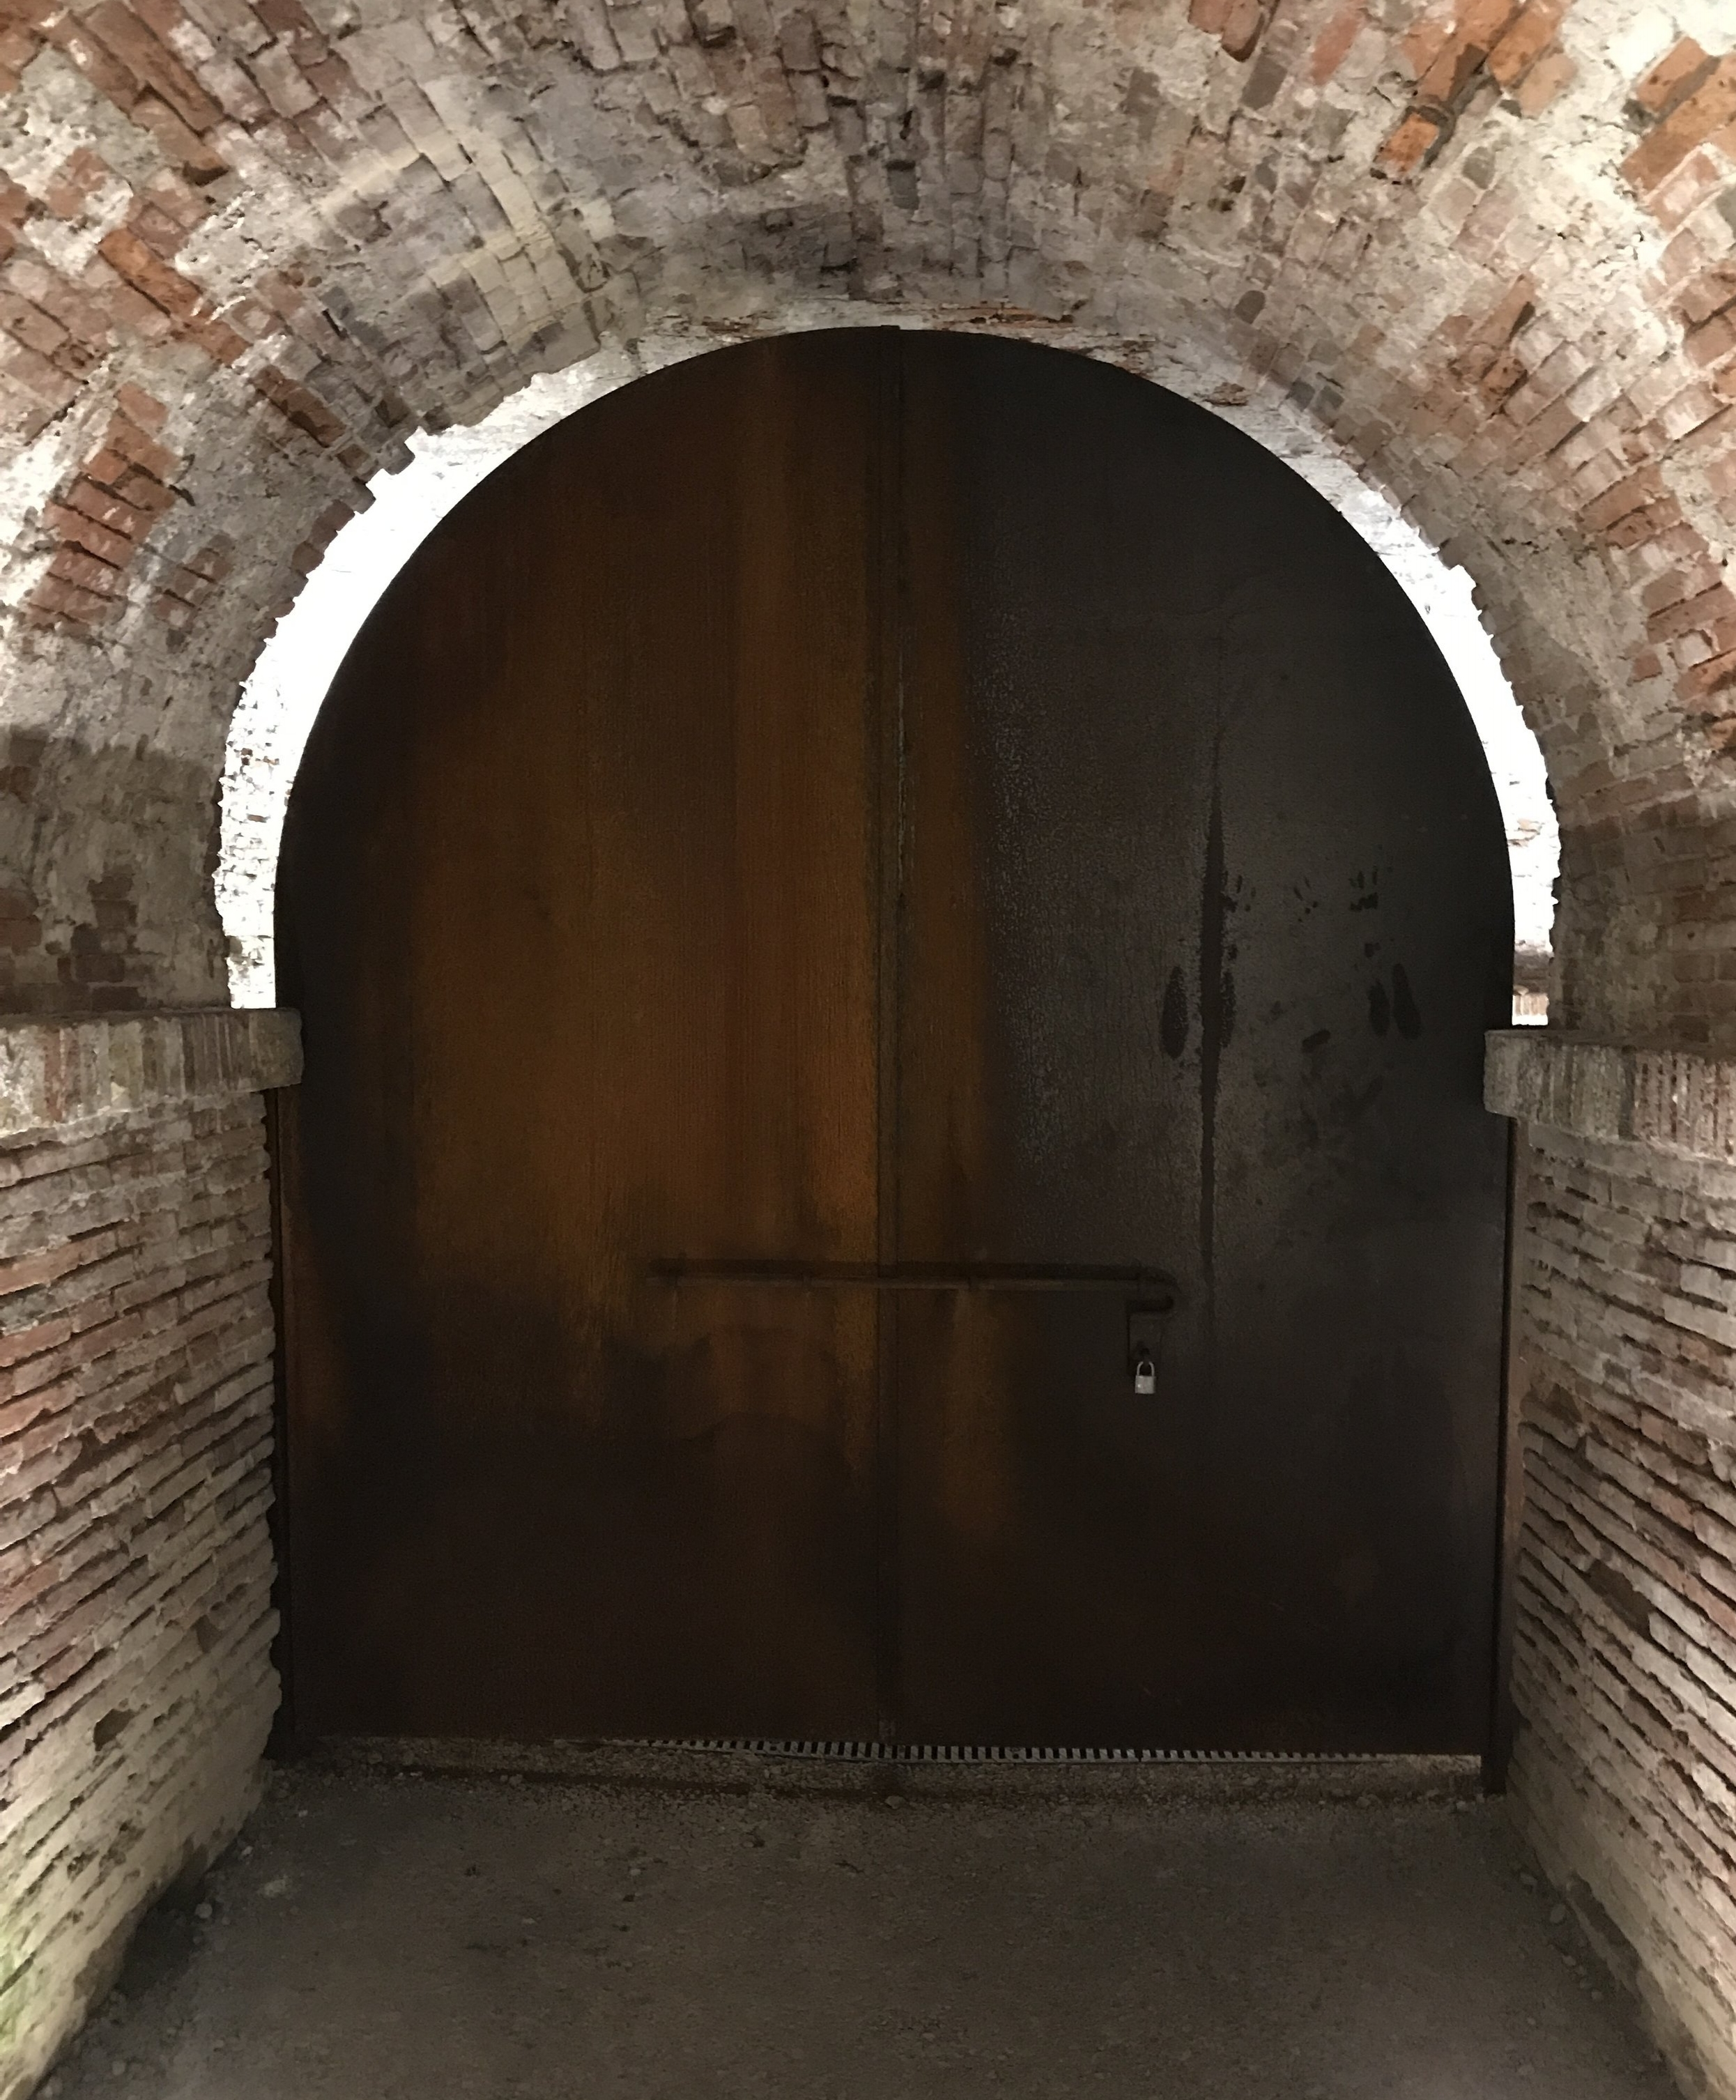 At the end of a passageway is a beautiful wooden door.